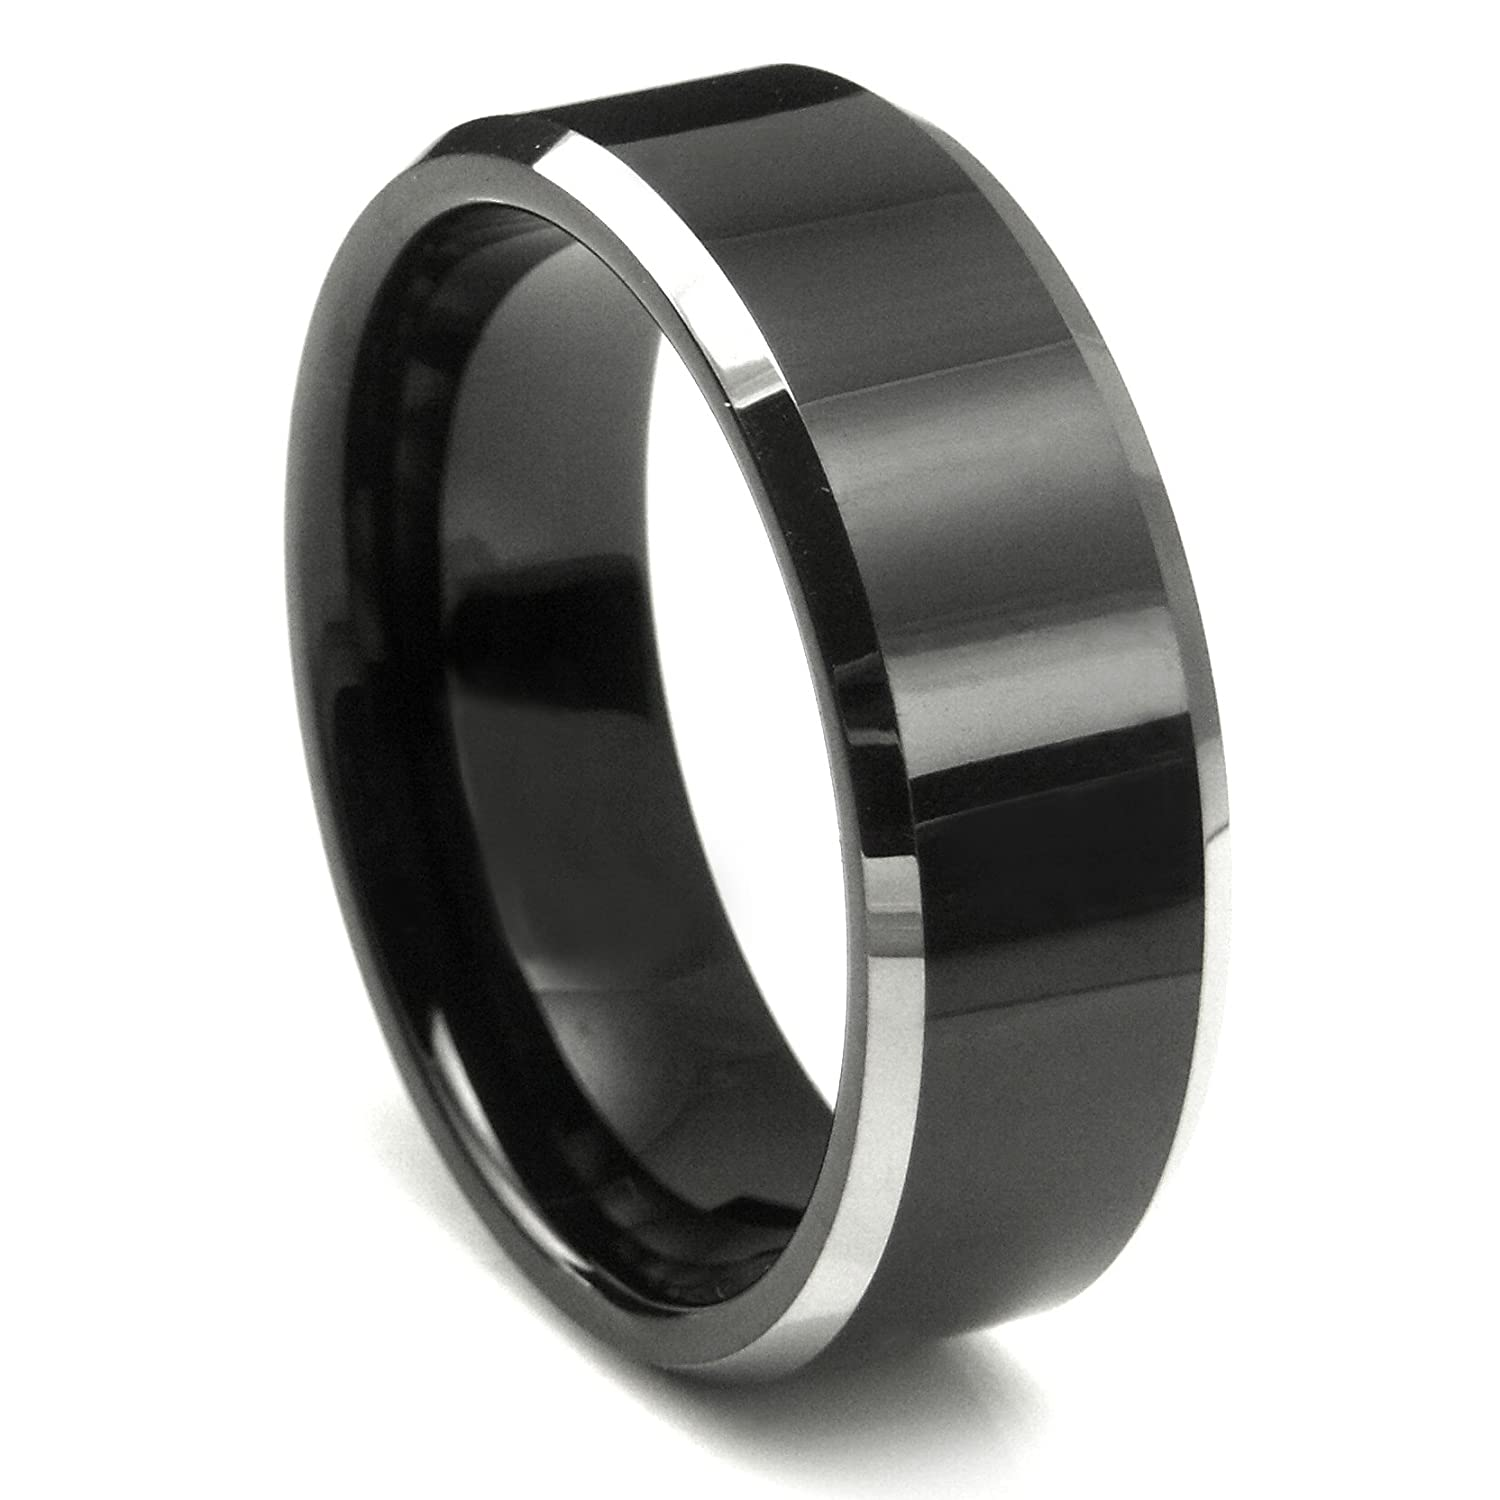 wood black carbidetungsten dome ring bandtungsten carbide inlay media rings band edge tungsten mens wedding